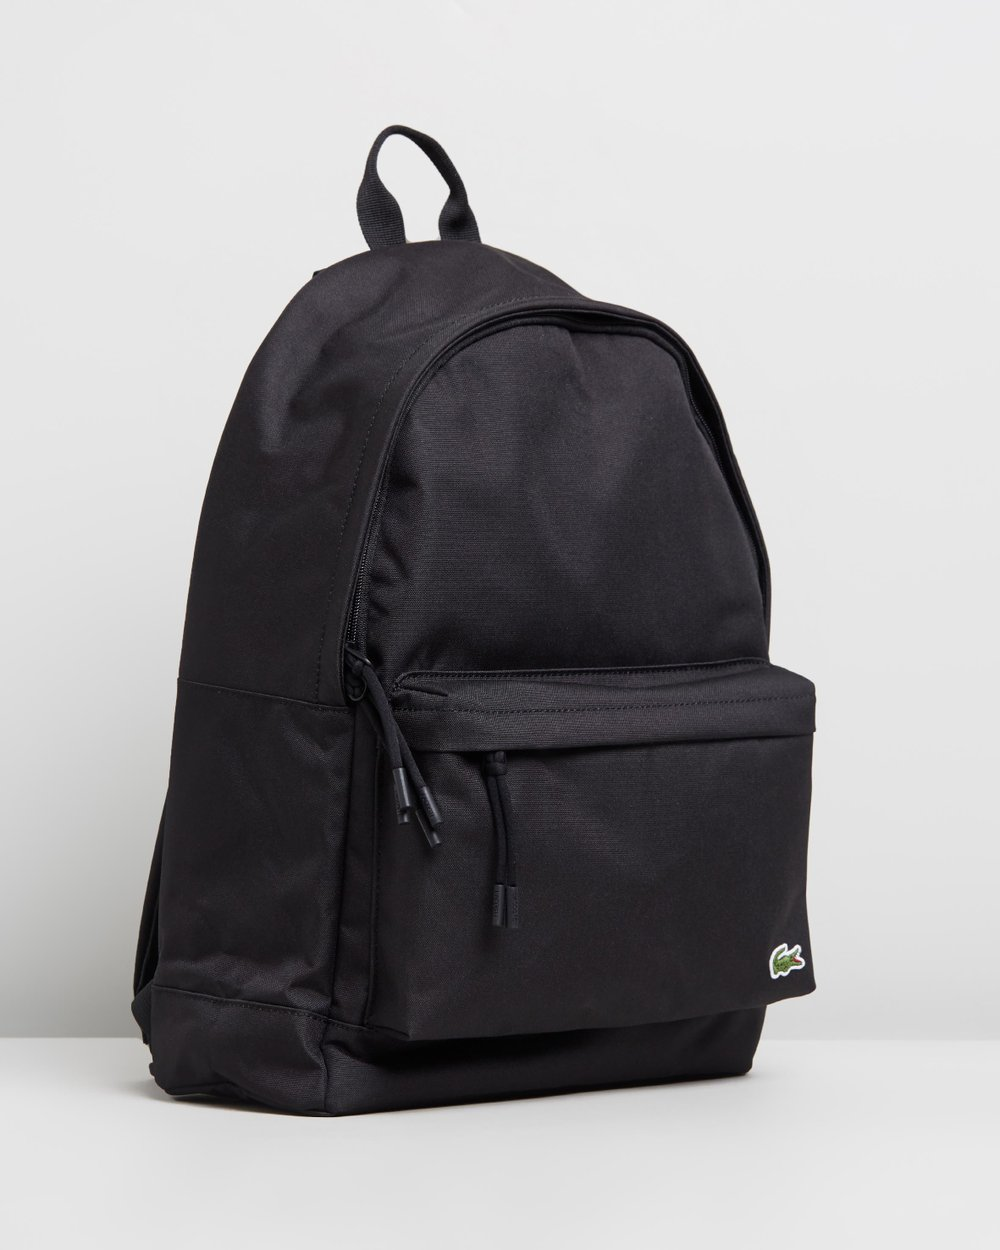 6561a6022d Neocroc Backpack by Lacoste Online | THE ICONIC | Australia